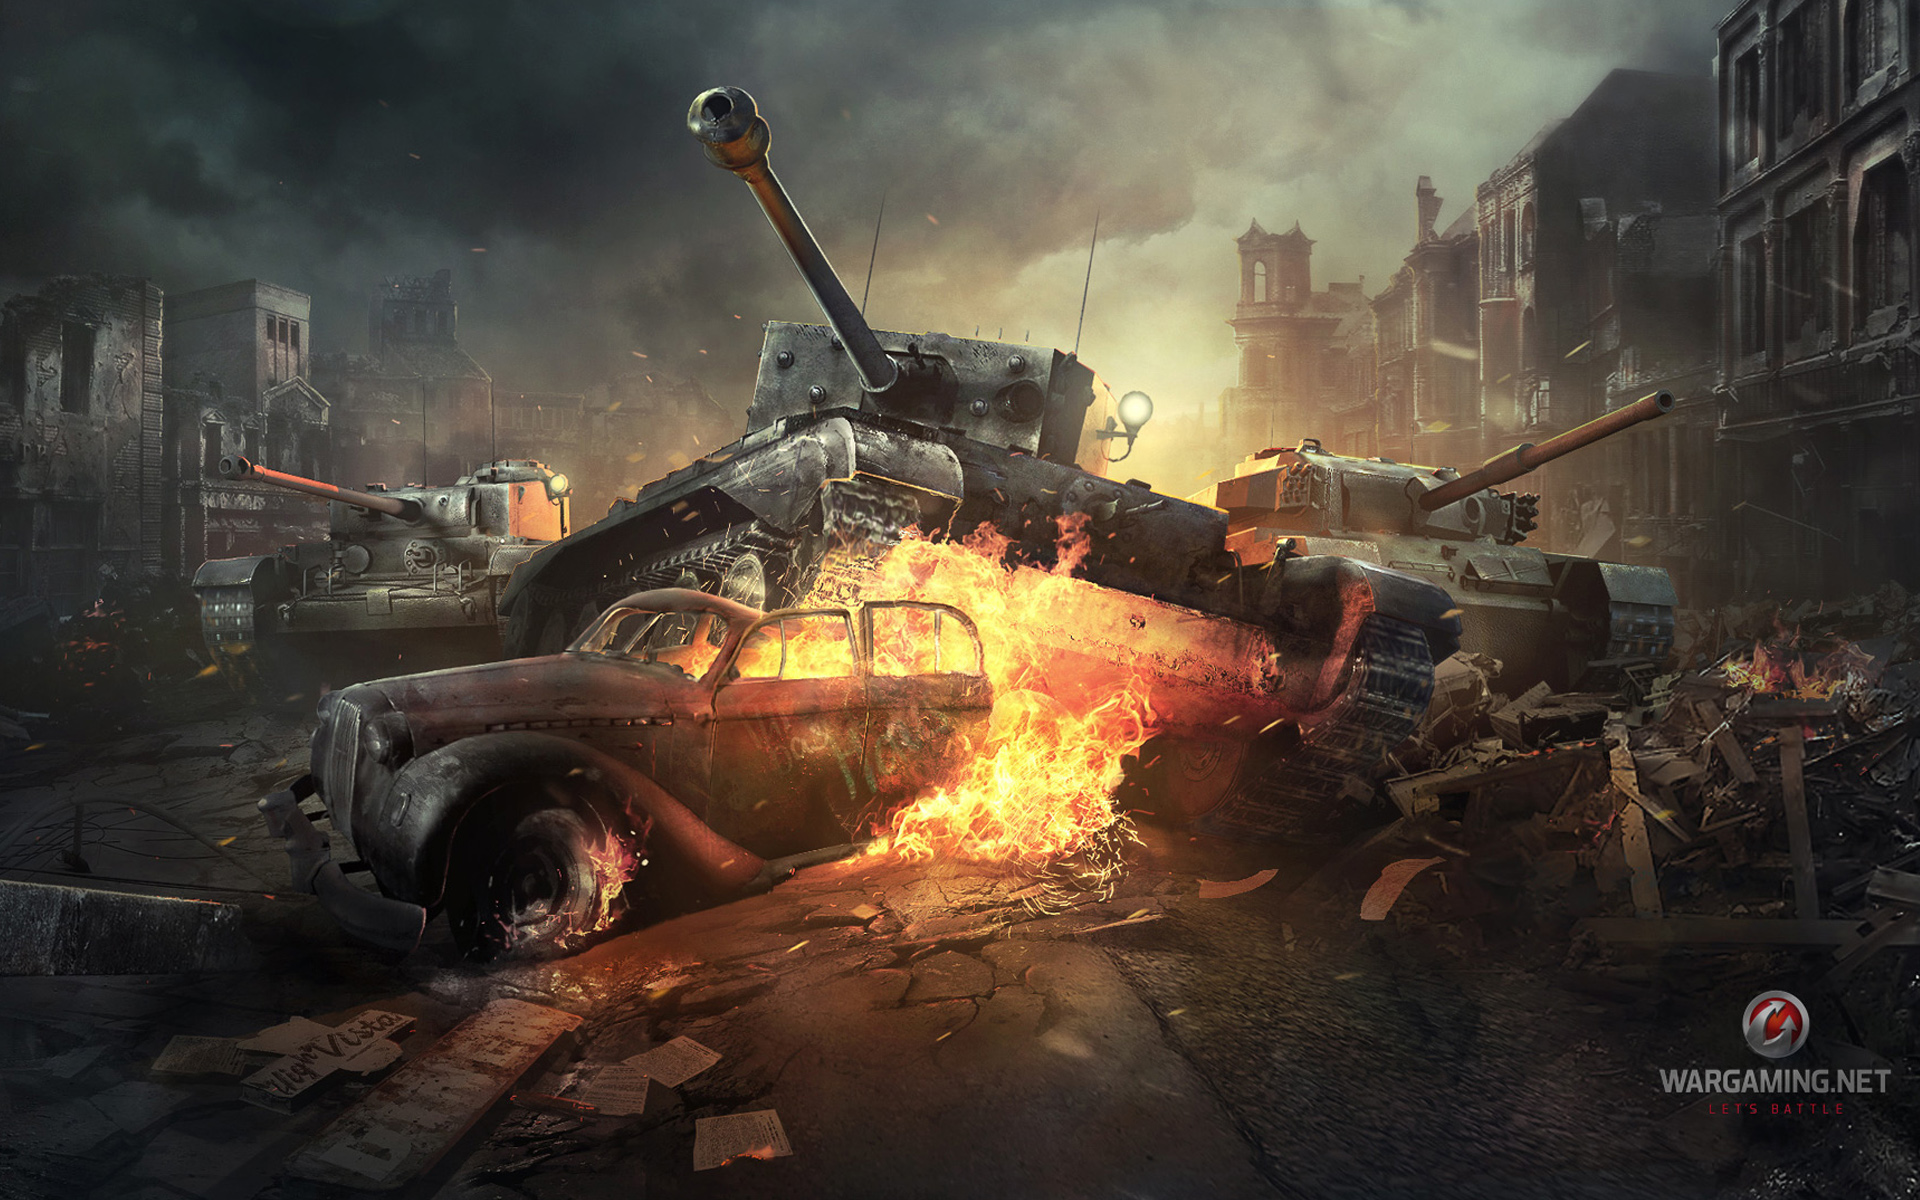 World of Tanks Online Game 1154.22 Kb